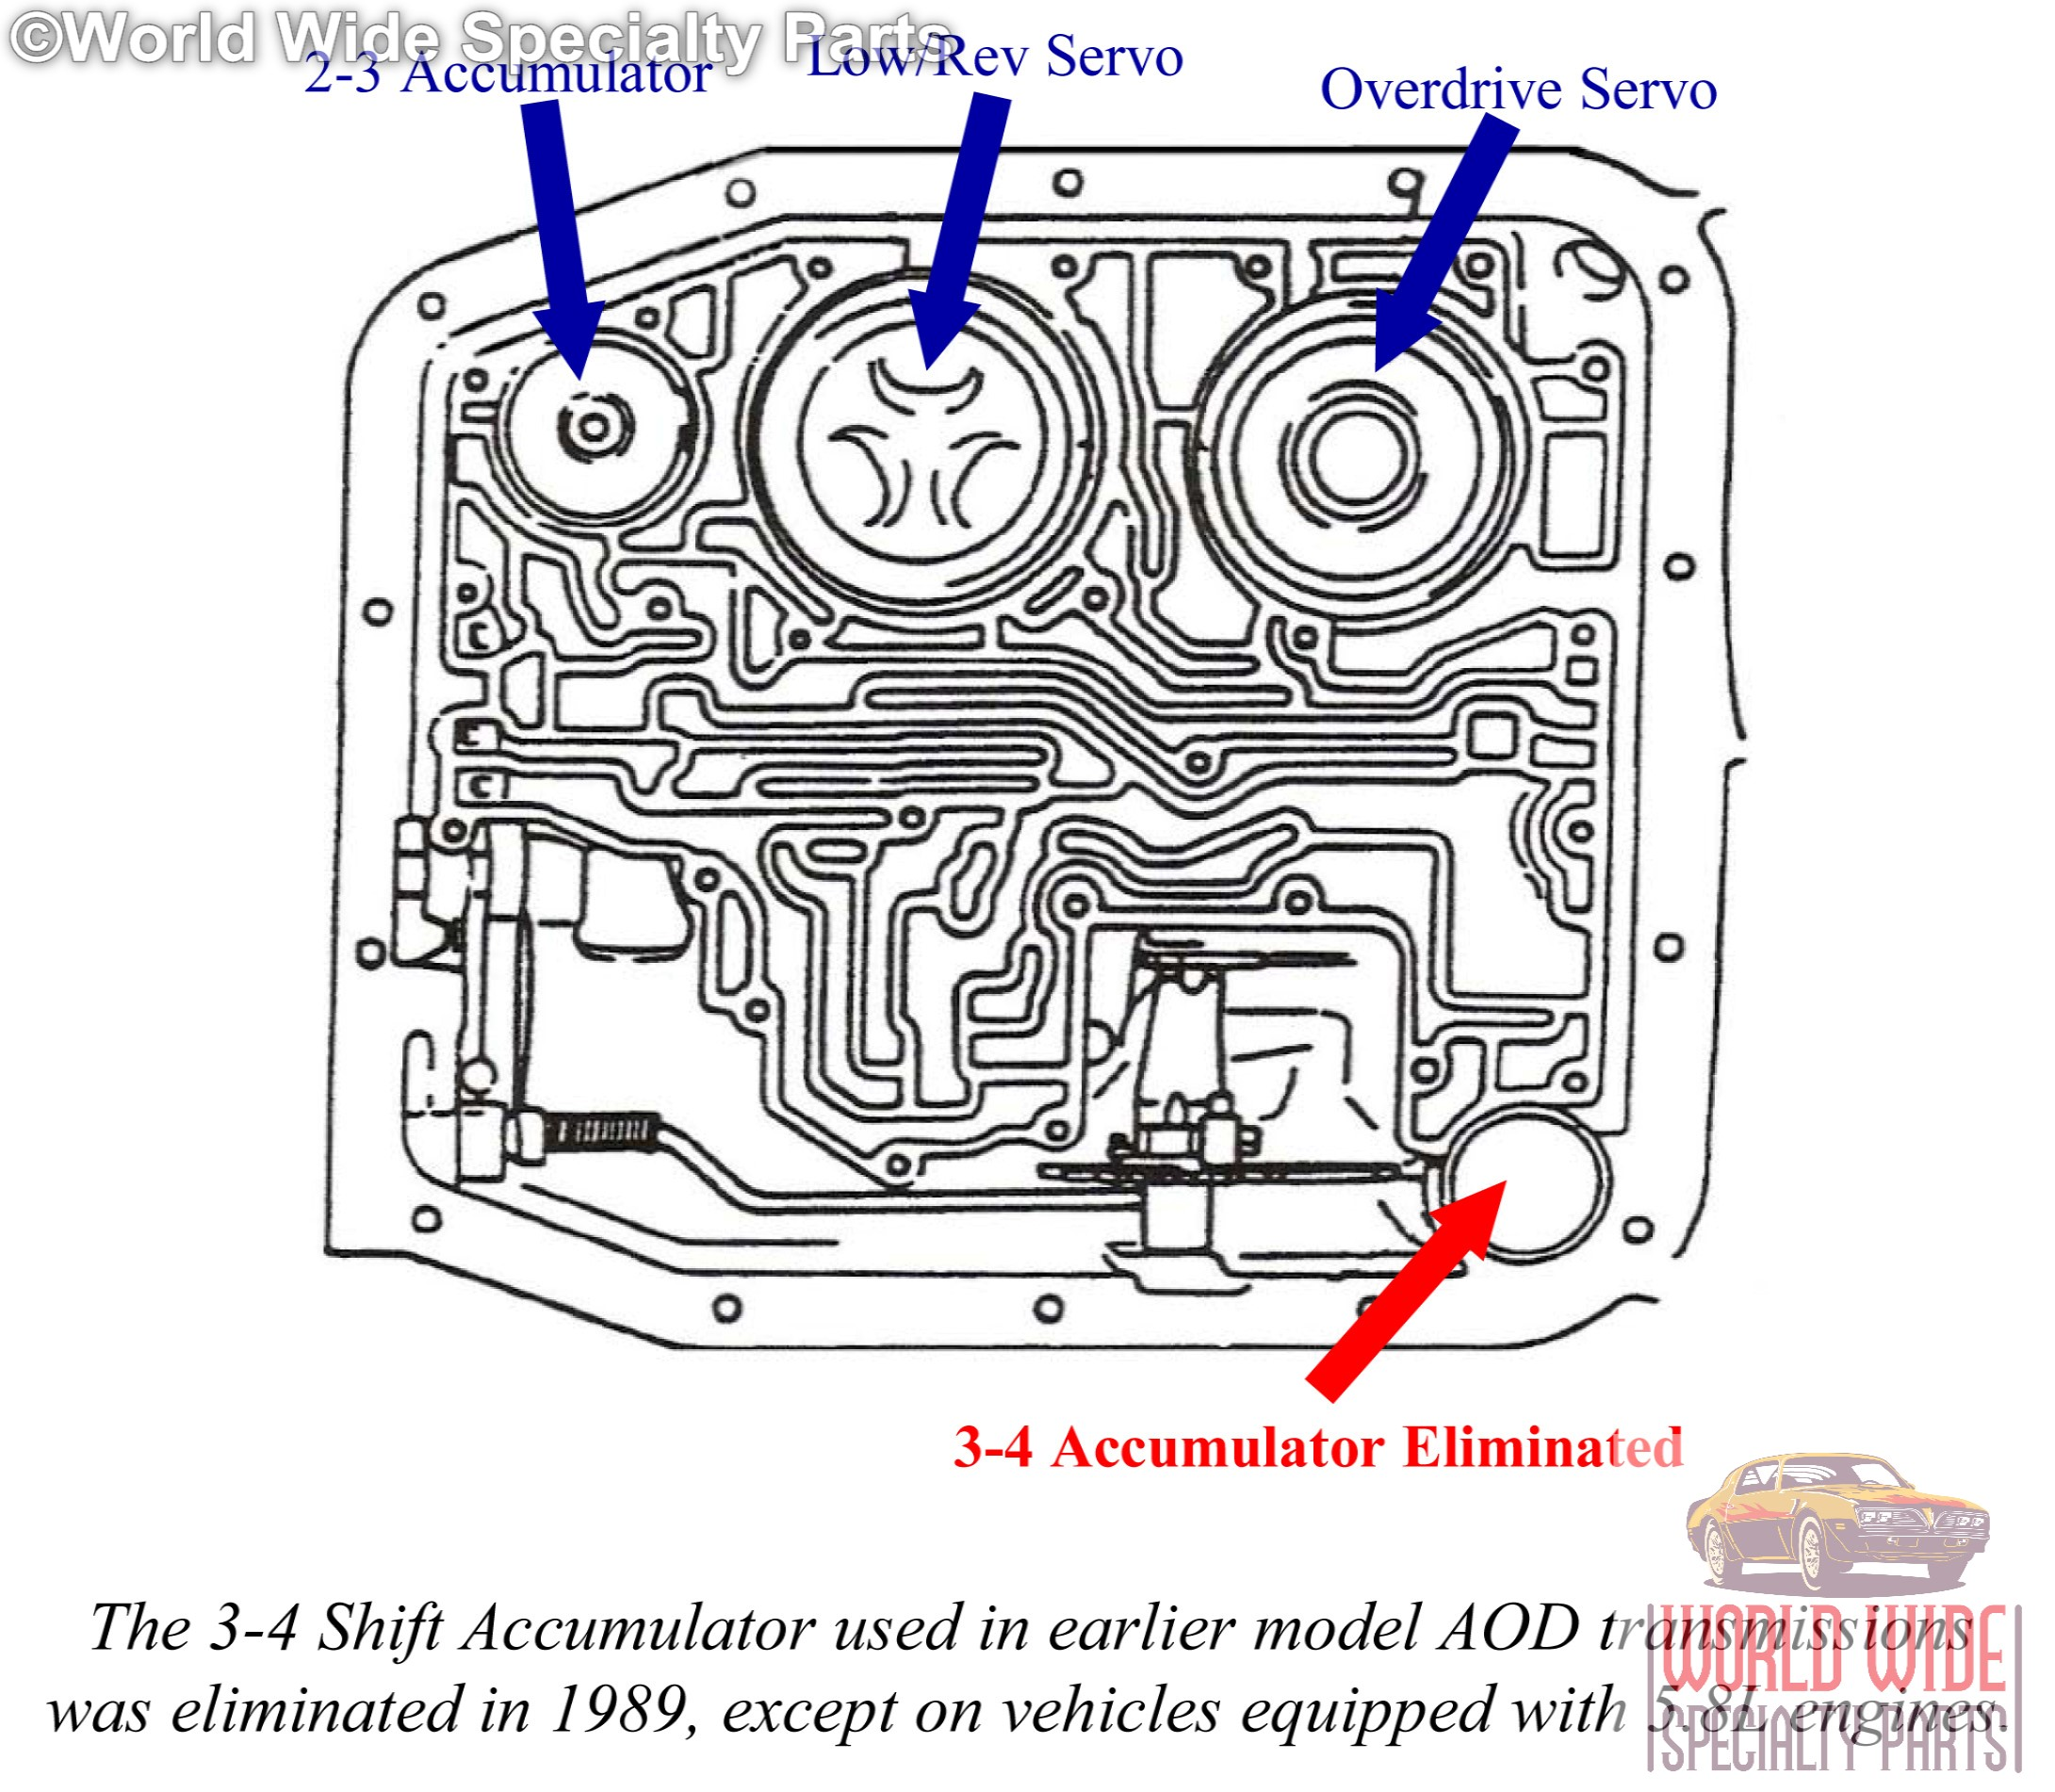 aod valve body diagram ford    aod     fiod    valve       body    1989 1993  1 year warranty  ford    aod     fiod    valve       body    1989 1993  1 year warranty